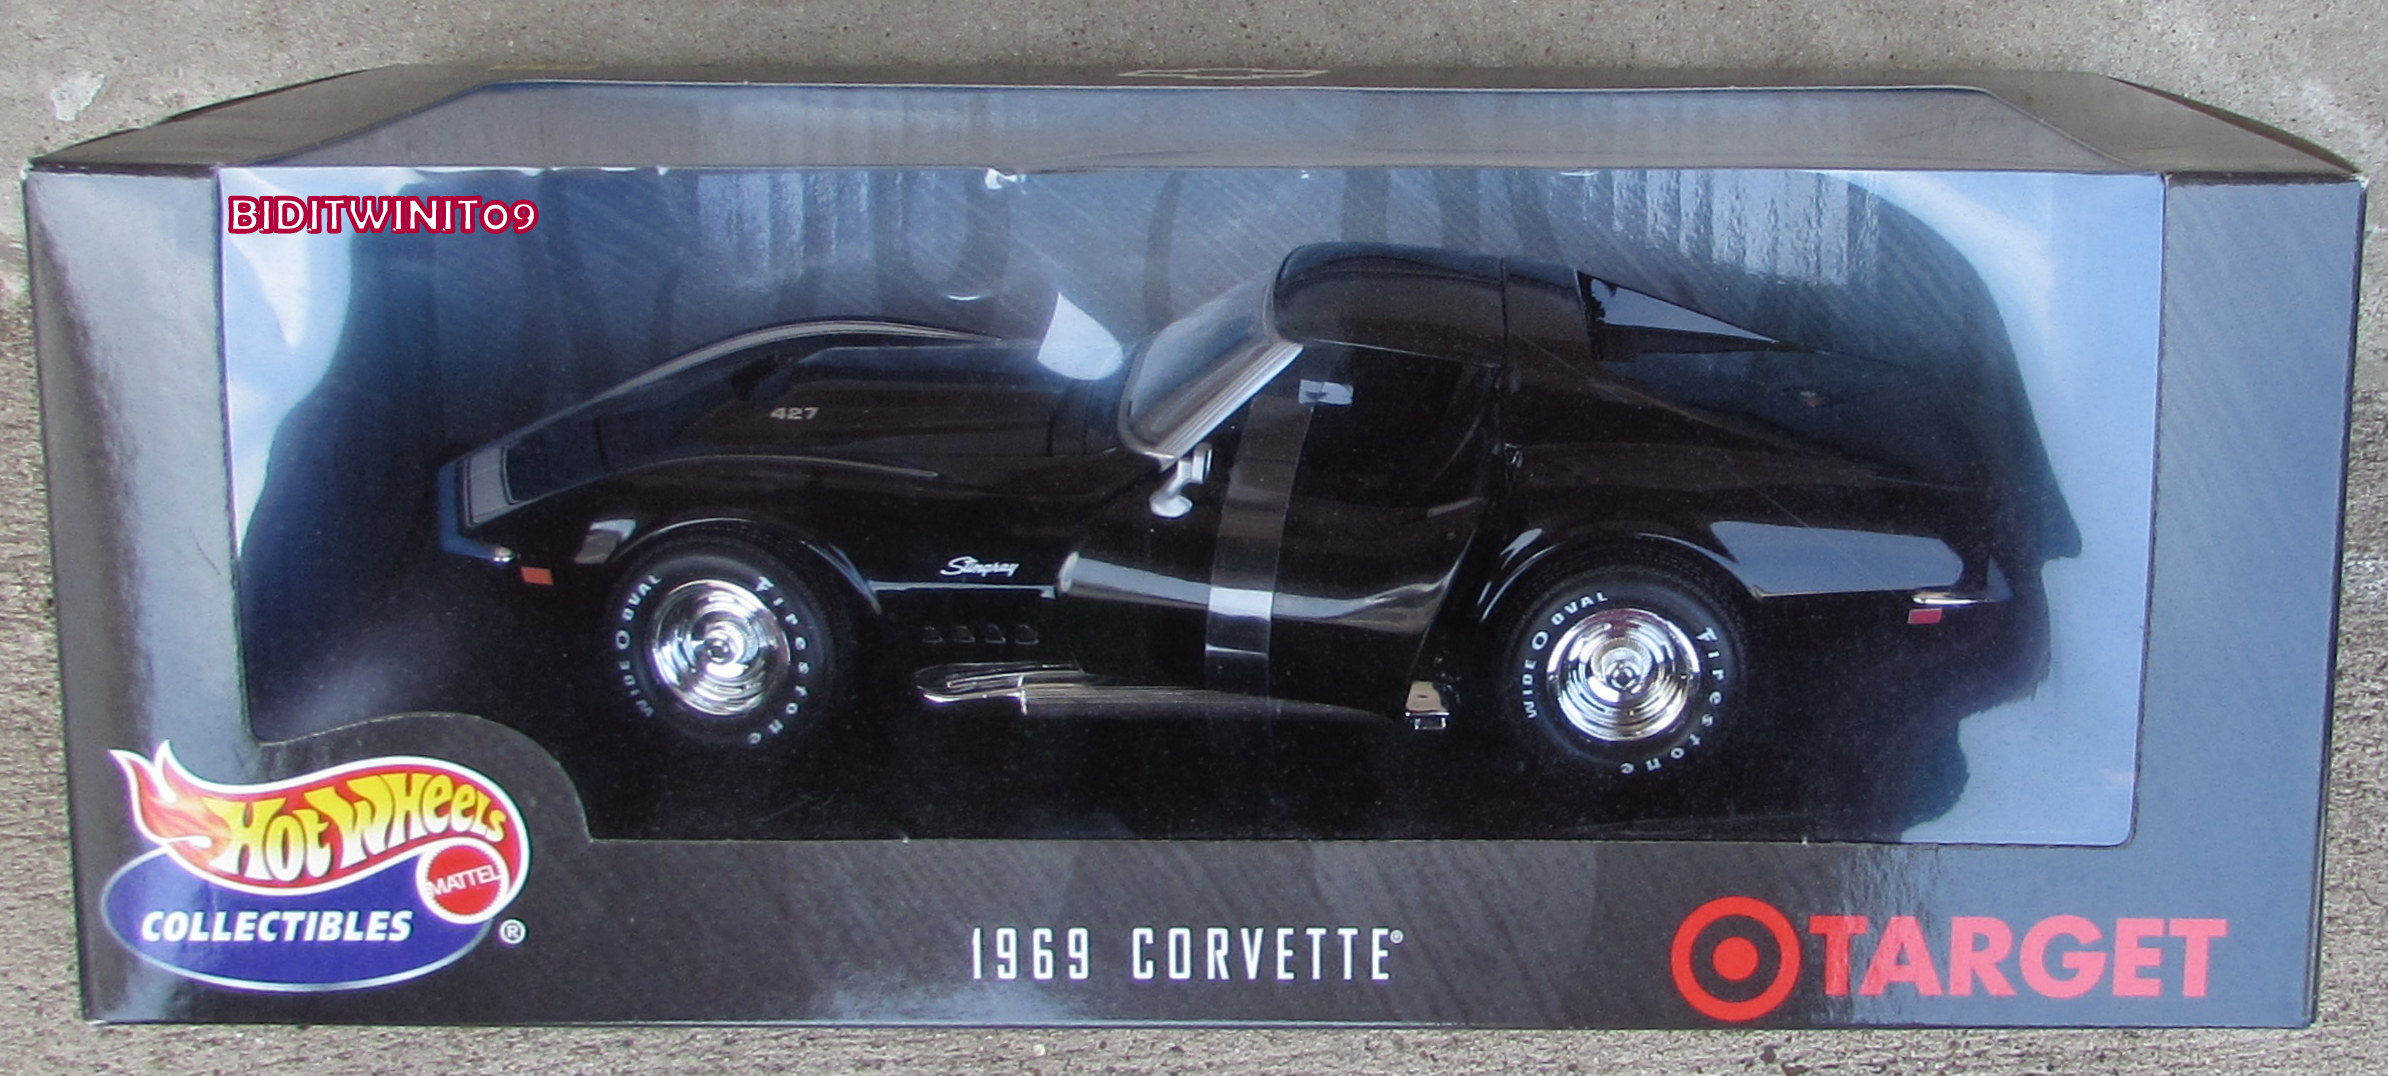 HOT WHEELS COLLECTIBLES TARGET EXCLUSIVE 1969 CORVETTE STINGRAY 1:18 E+